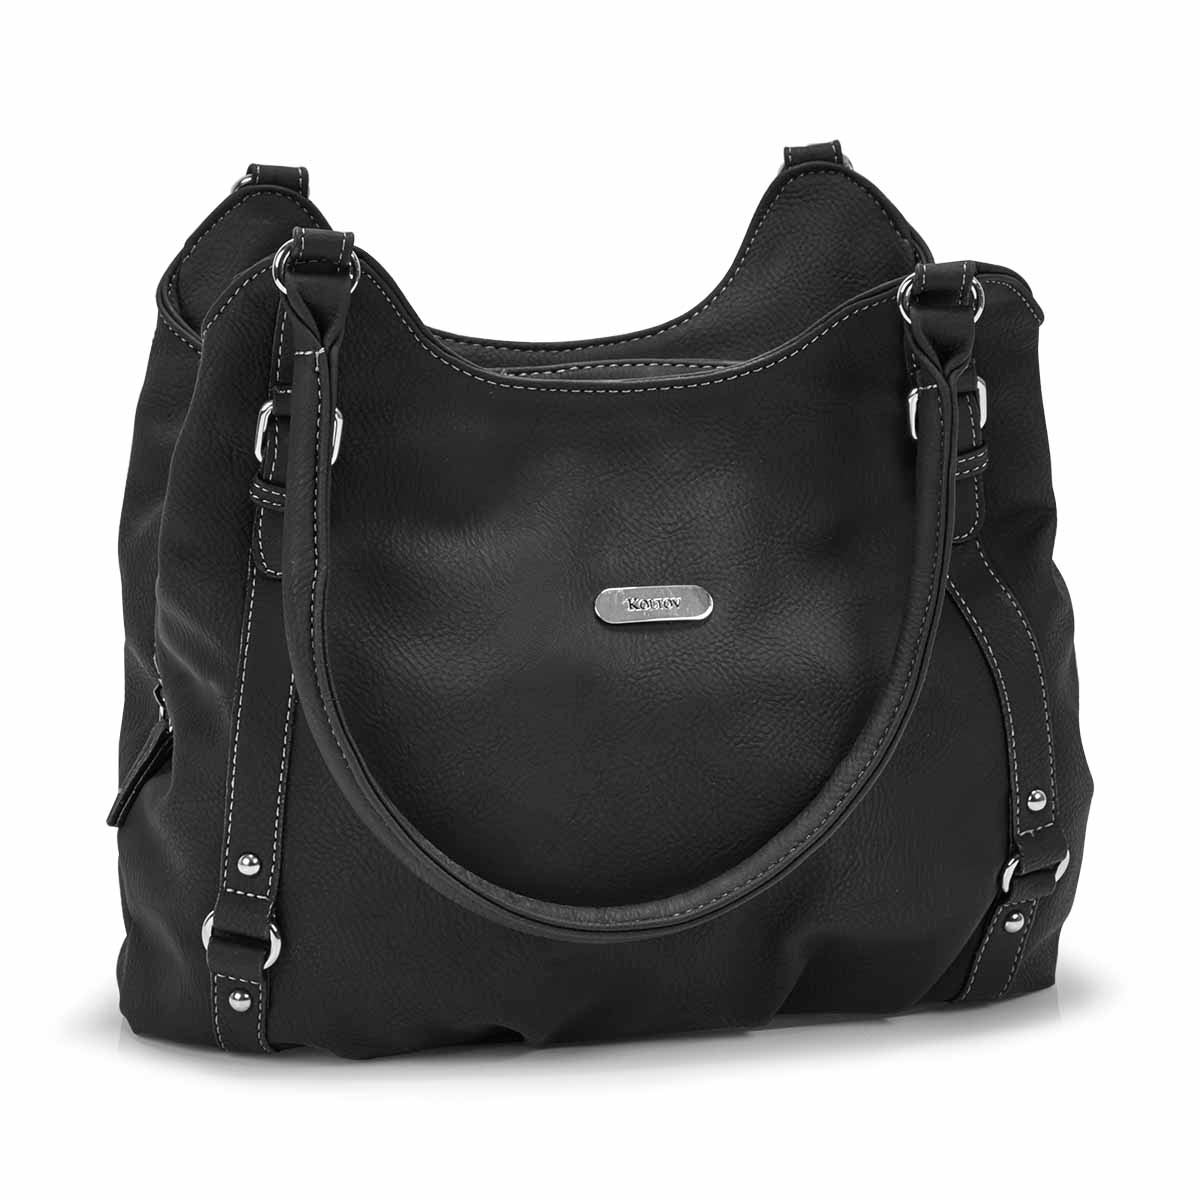 Women's SYDNEY black hobo bag